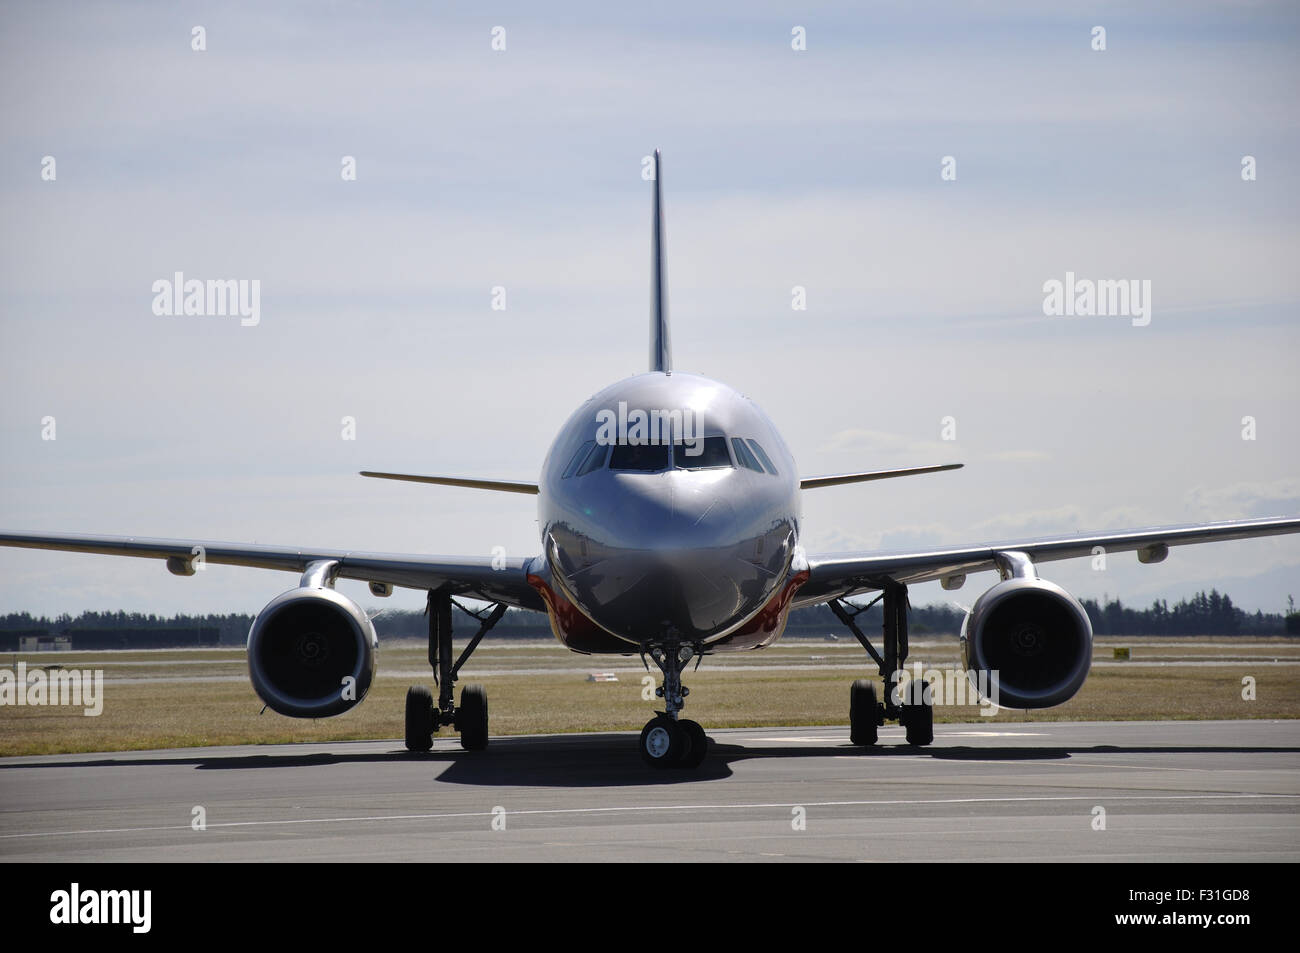 Airbus 320 waiting on the tarmac at an airport - Stock Image